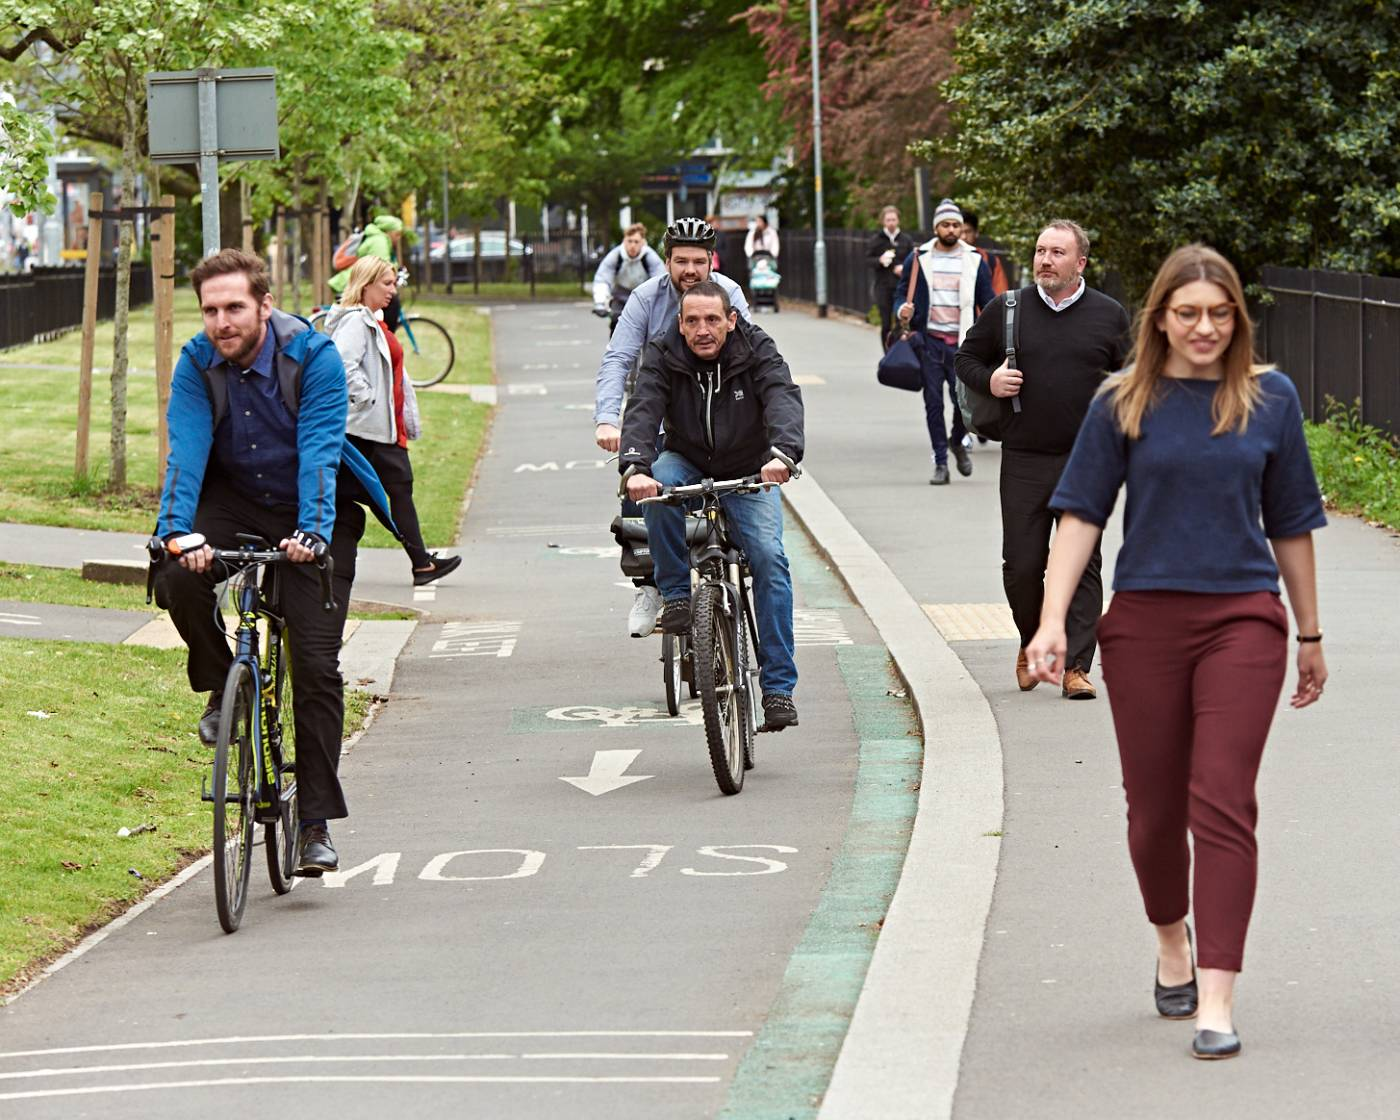 People strolling on pavement and cycling on a segregated cycle lane